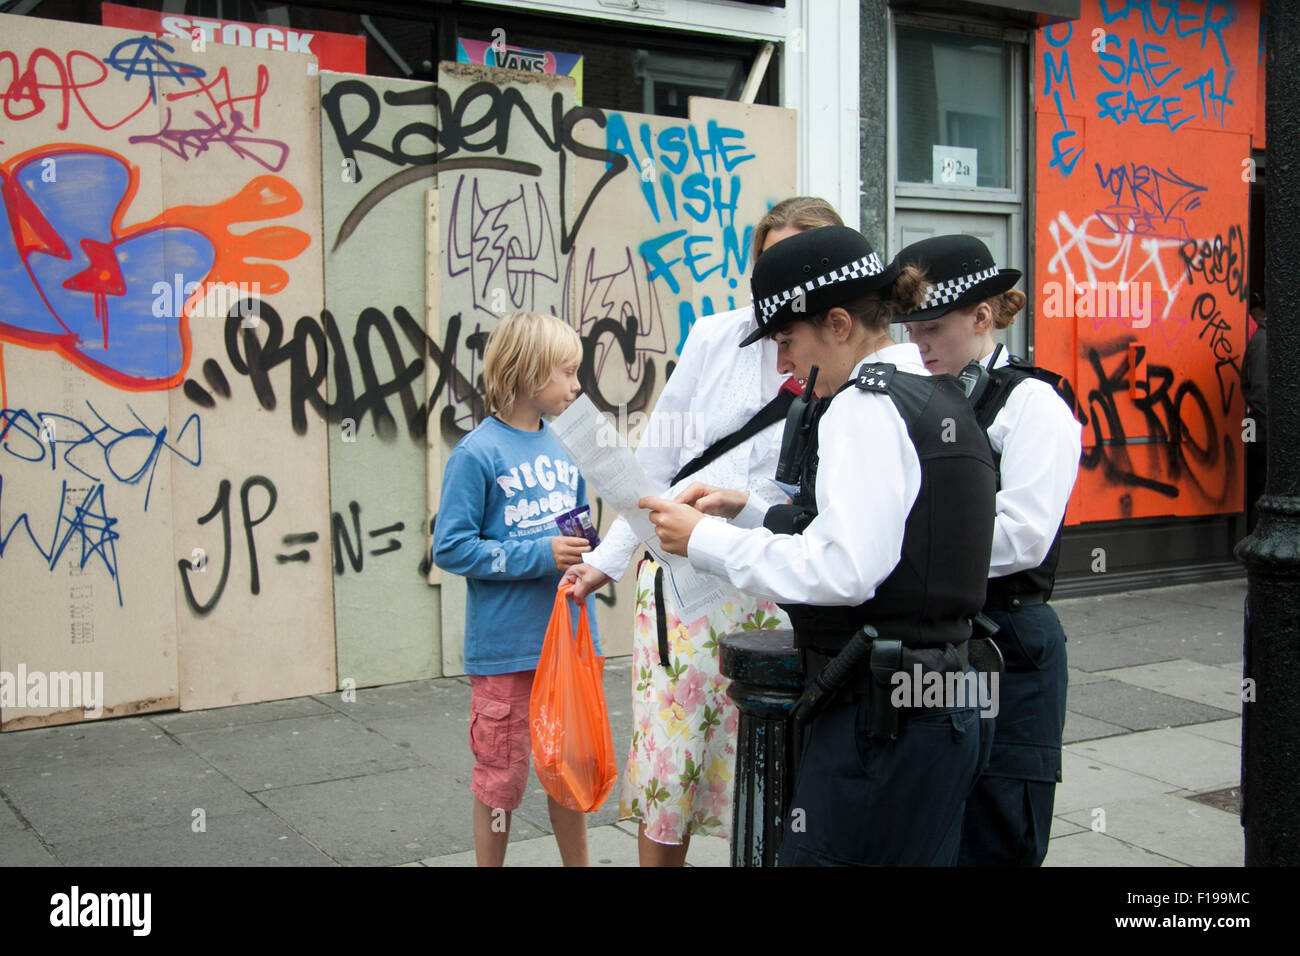 Notting Hill London,UK  30th August 2015  Police officers